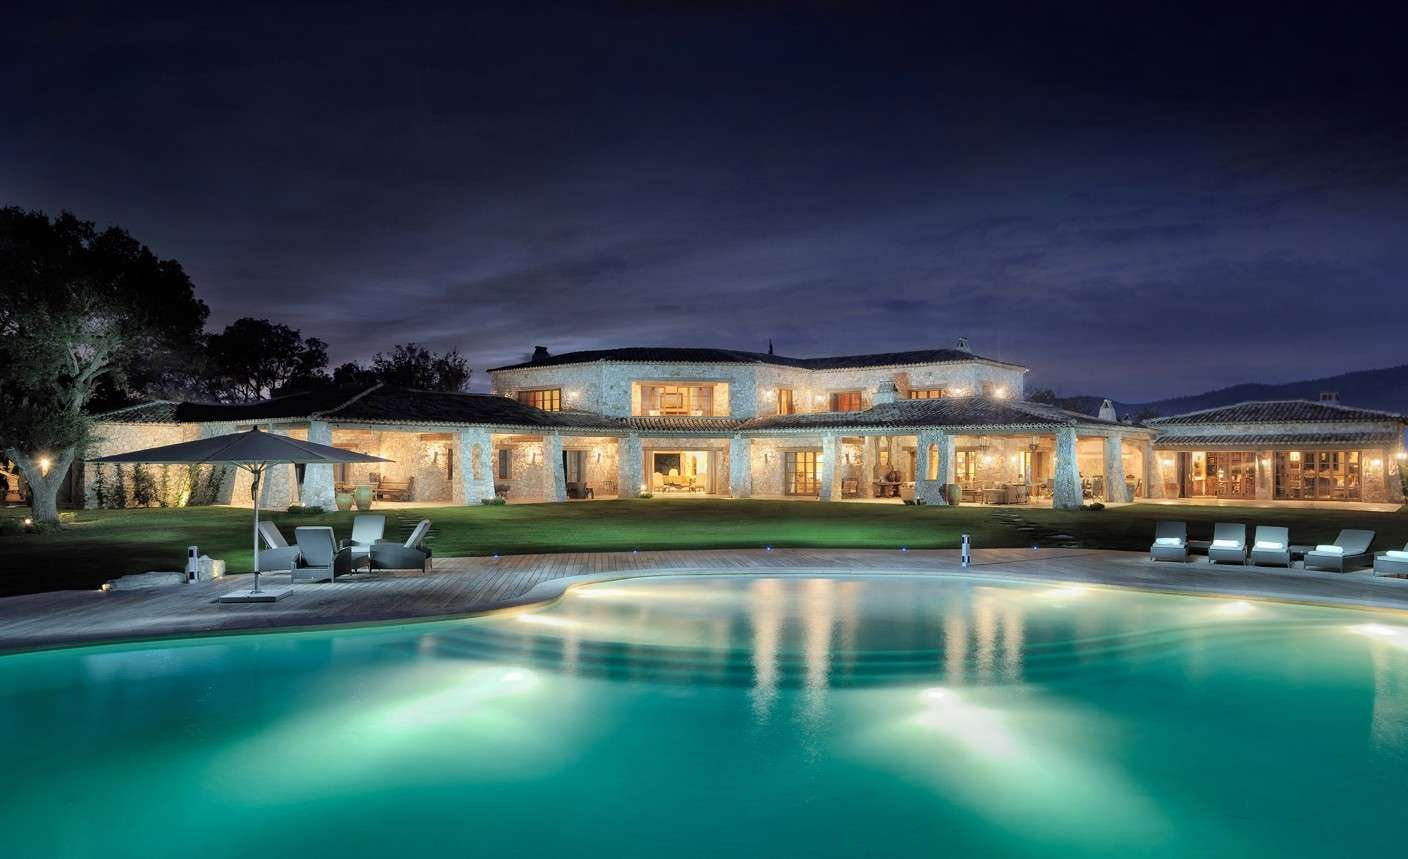 Luxury vacation rentals europe - France - French riviera - Cannes - Toscana Estate - Image 1/31